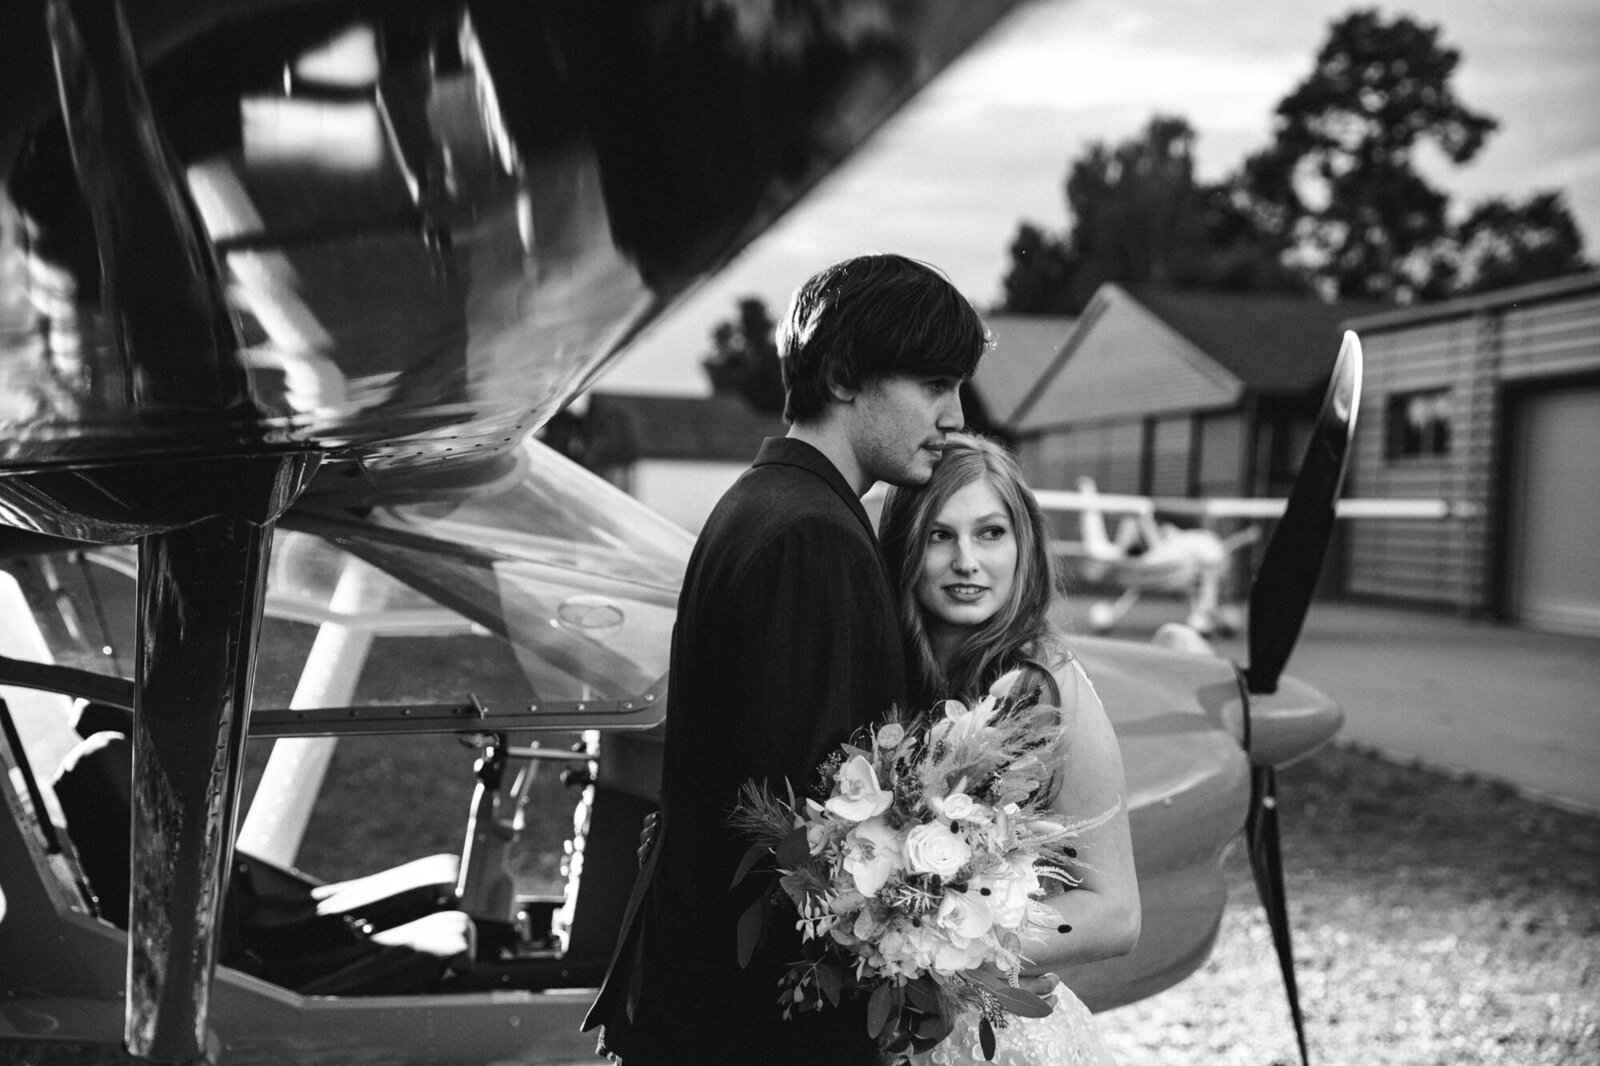 Jenny-D-Photography_Airpot_Love_Wedding_blackandwhite  (1)